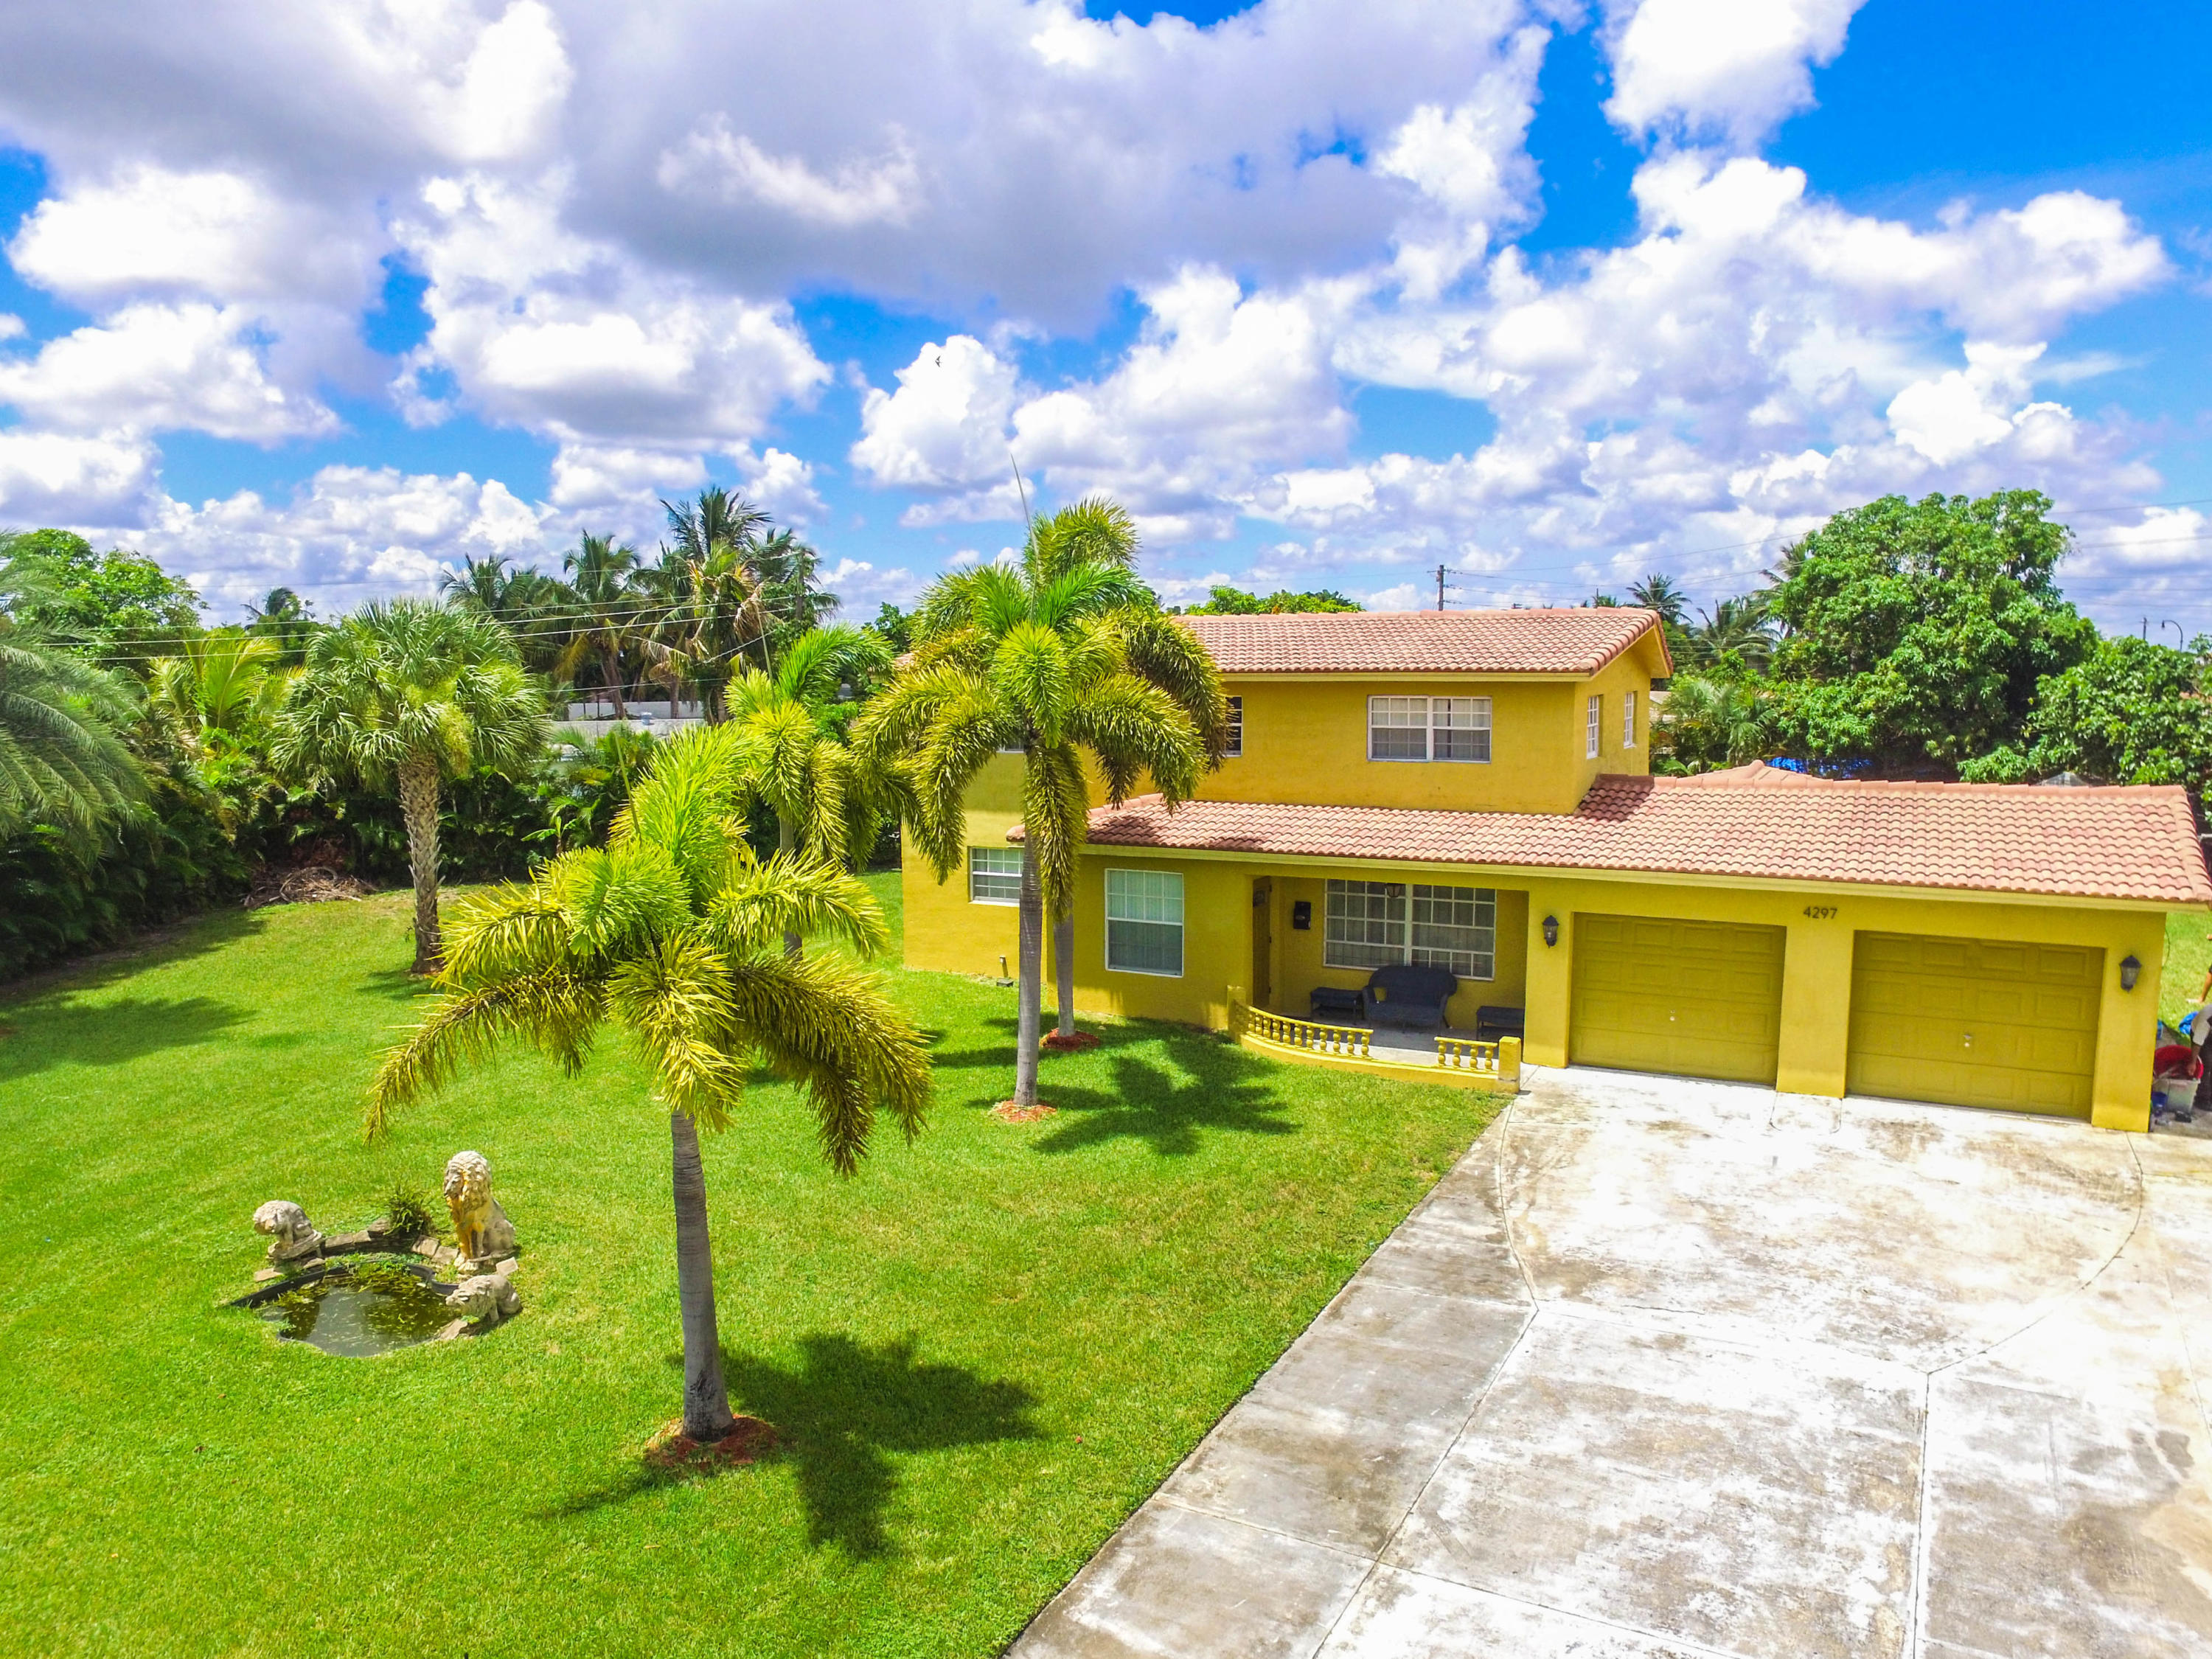 Photo of home for sale at 4297 34 Ter Terrace NW, Lauderdale Lakes FL